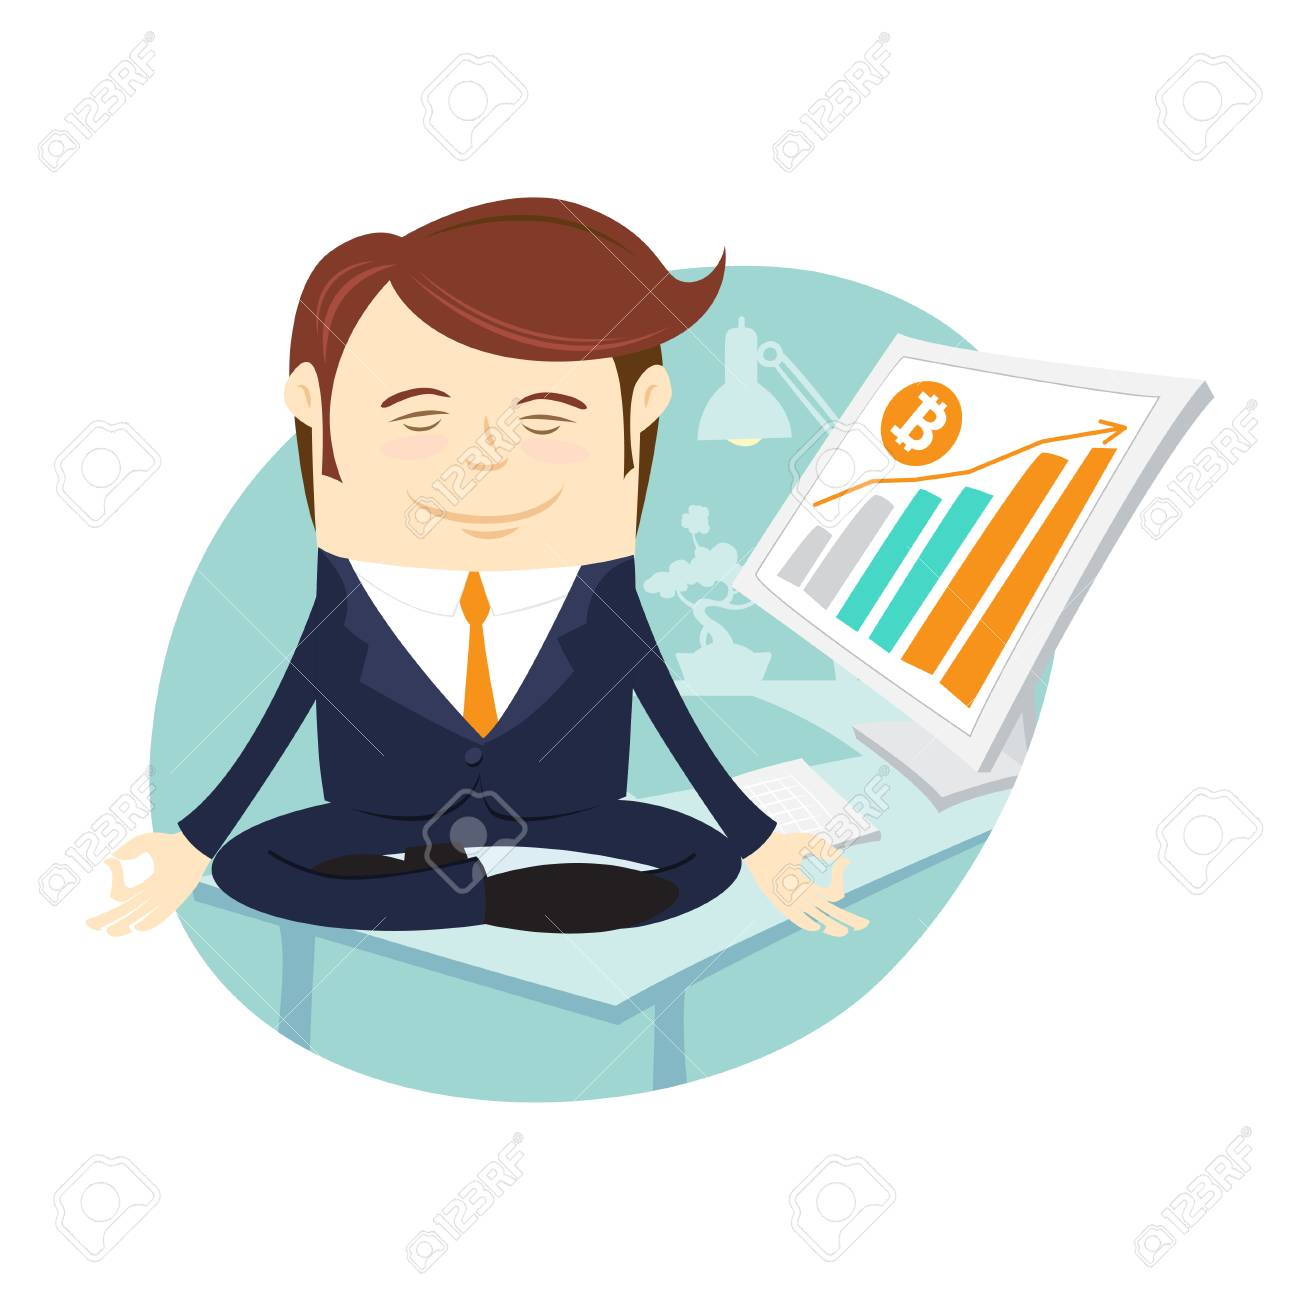 Funny Businessman Mining Bitcoin Office Desk Computer Doing Royalty Free Cliparts Vectors And Stock Illustration Image 90136647